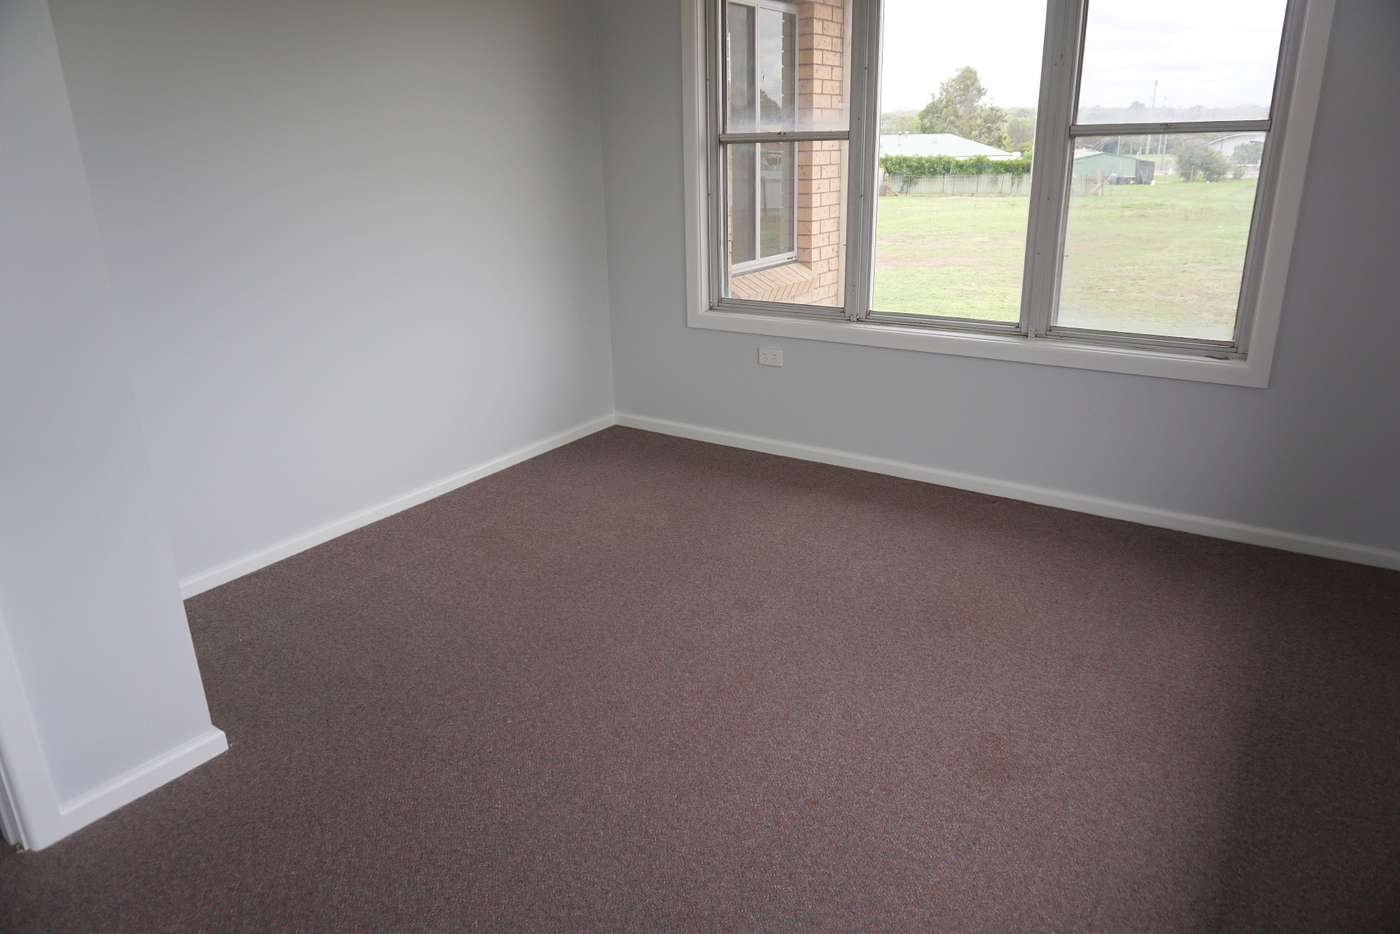 Sixth view of Homely house listing, 80A Yates Street, Branxton NSW 2335